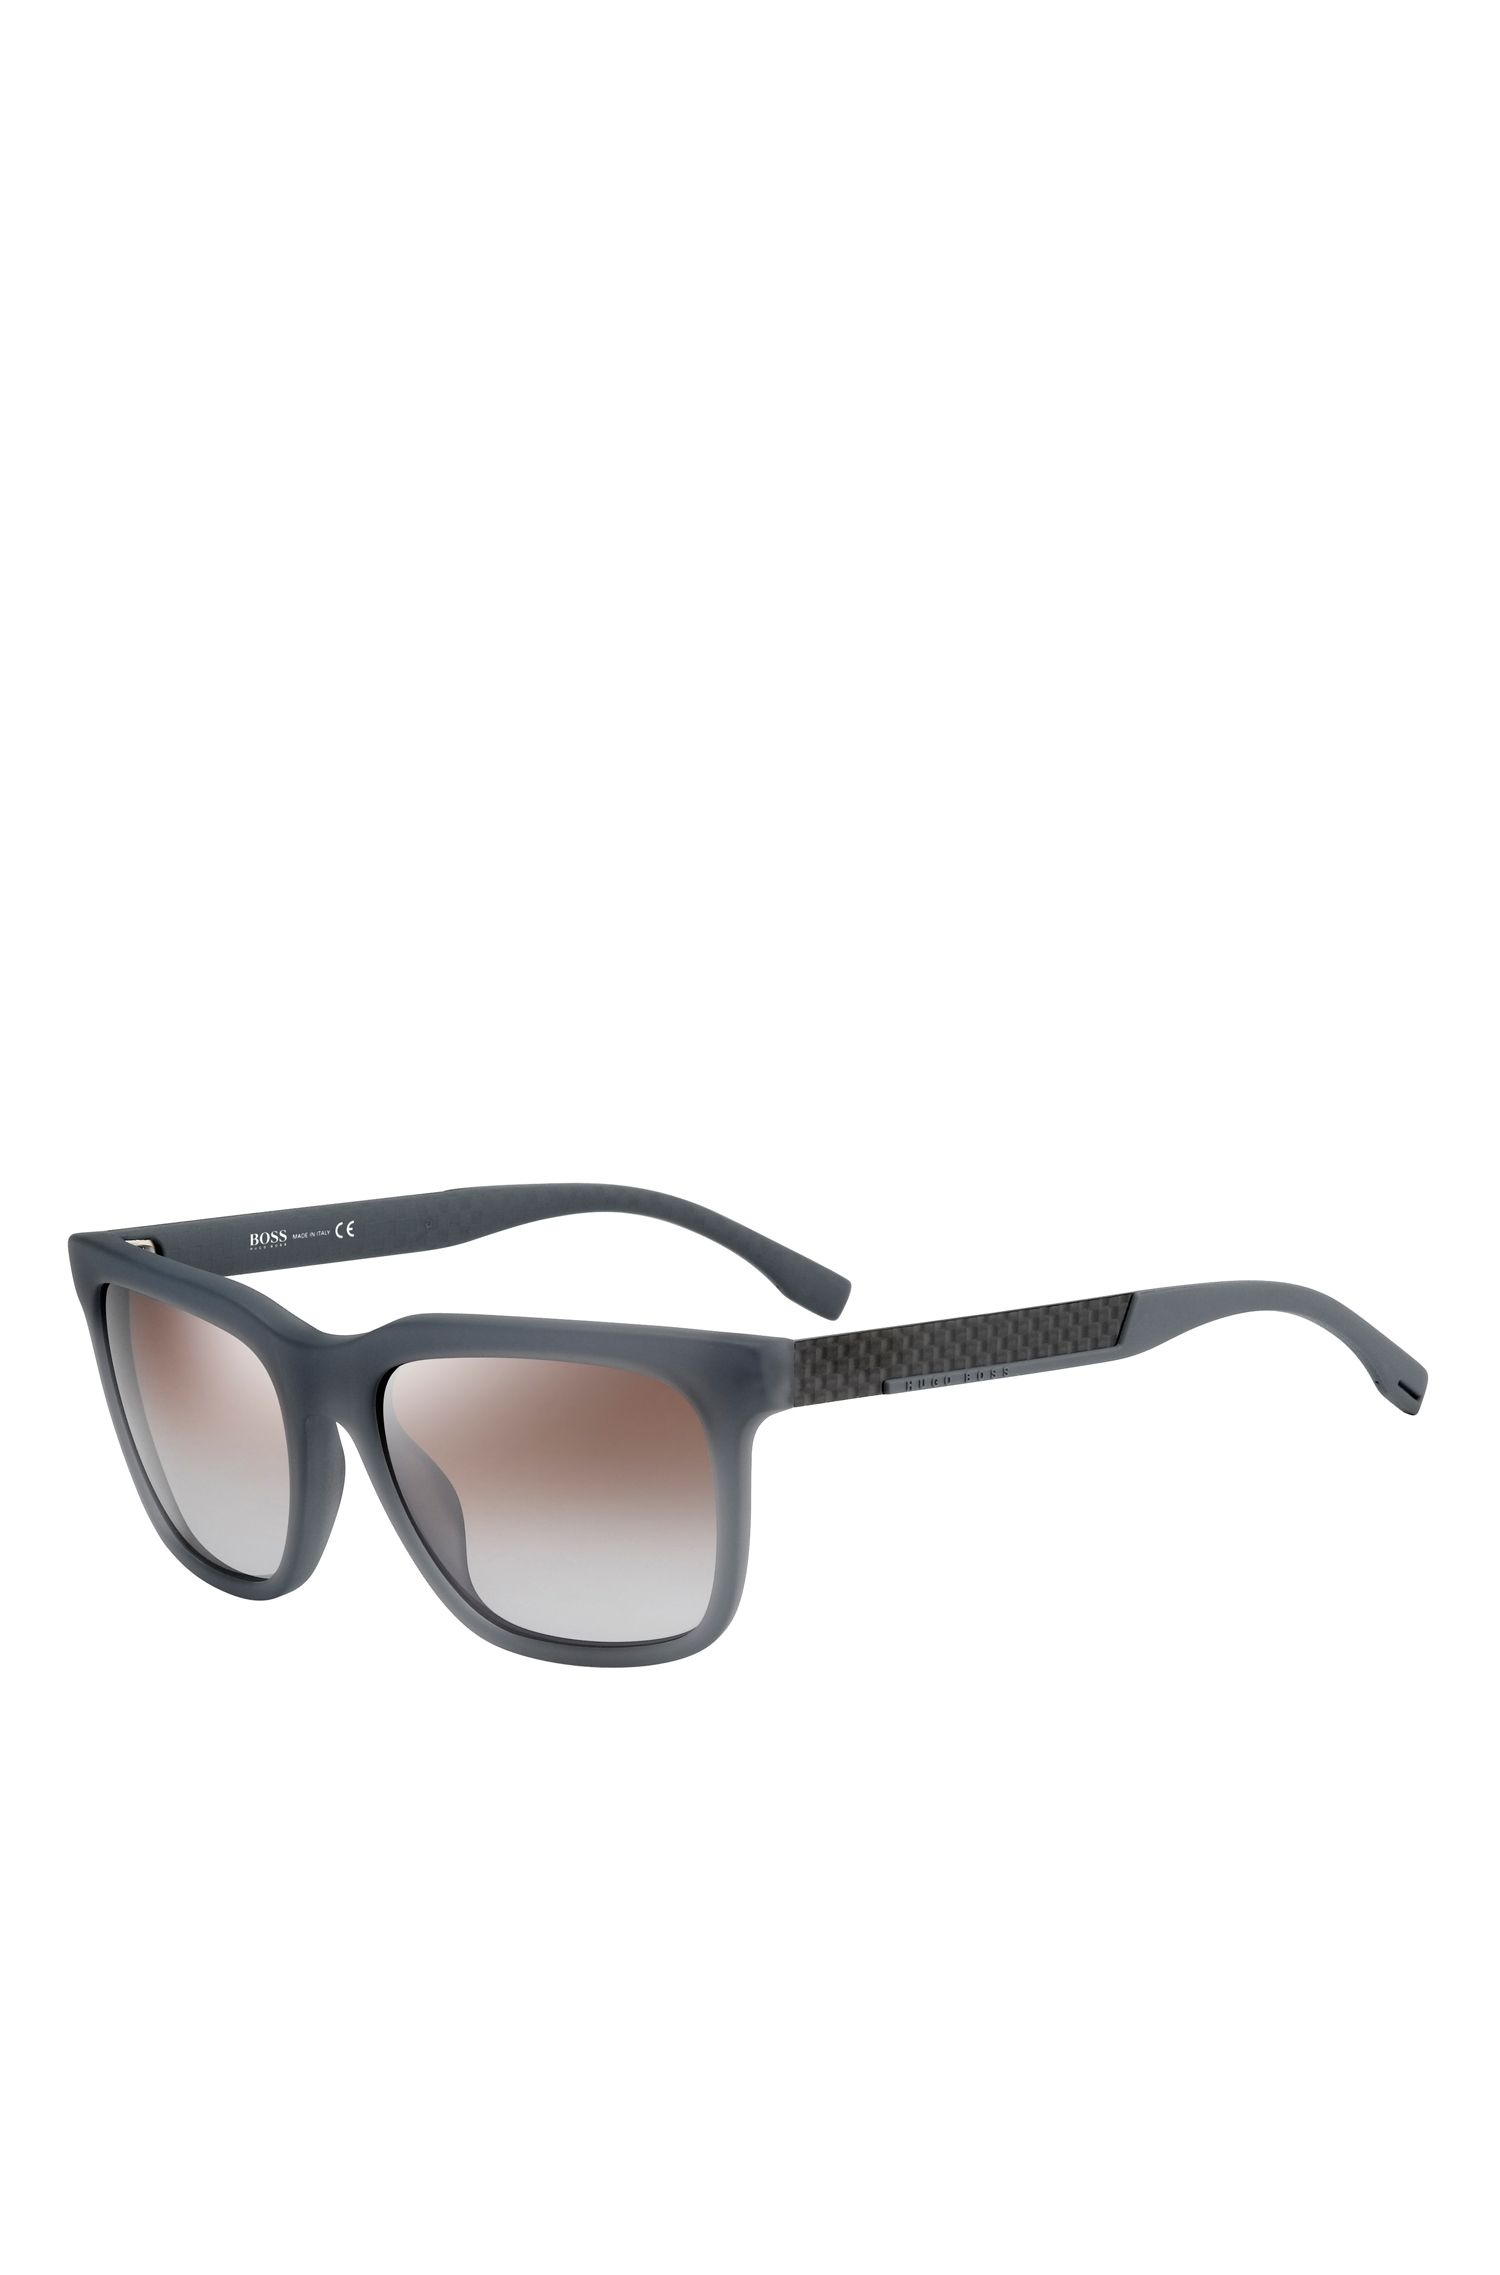 'BOSS 0670S' | Gradient Lens Rectangular Sunglasses